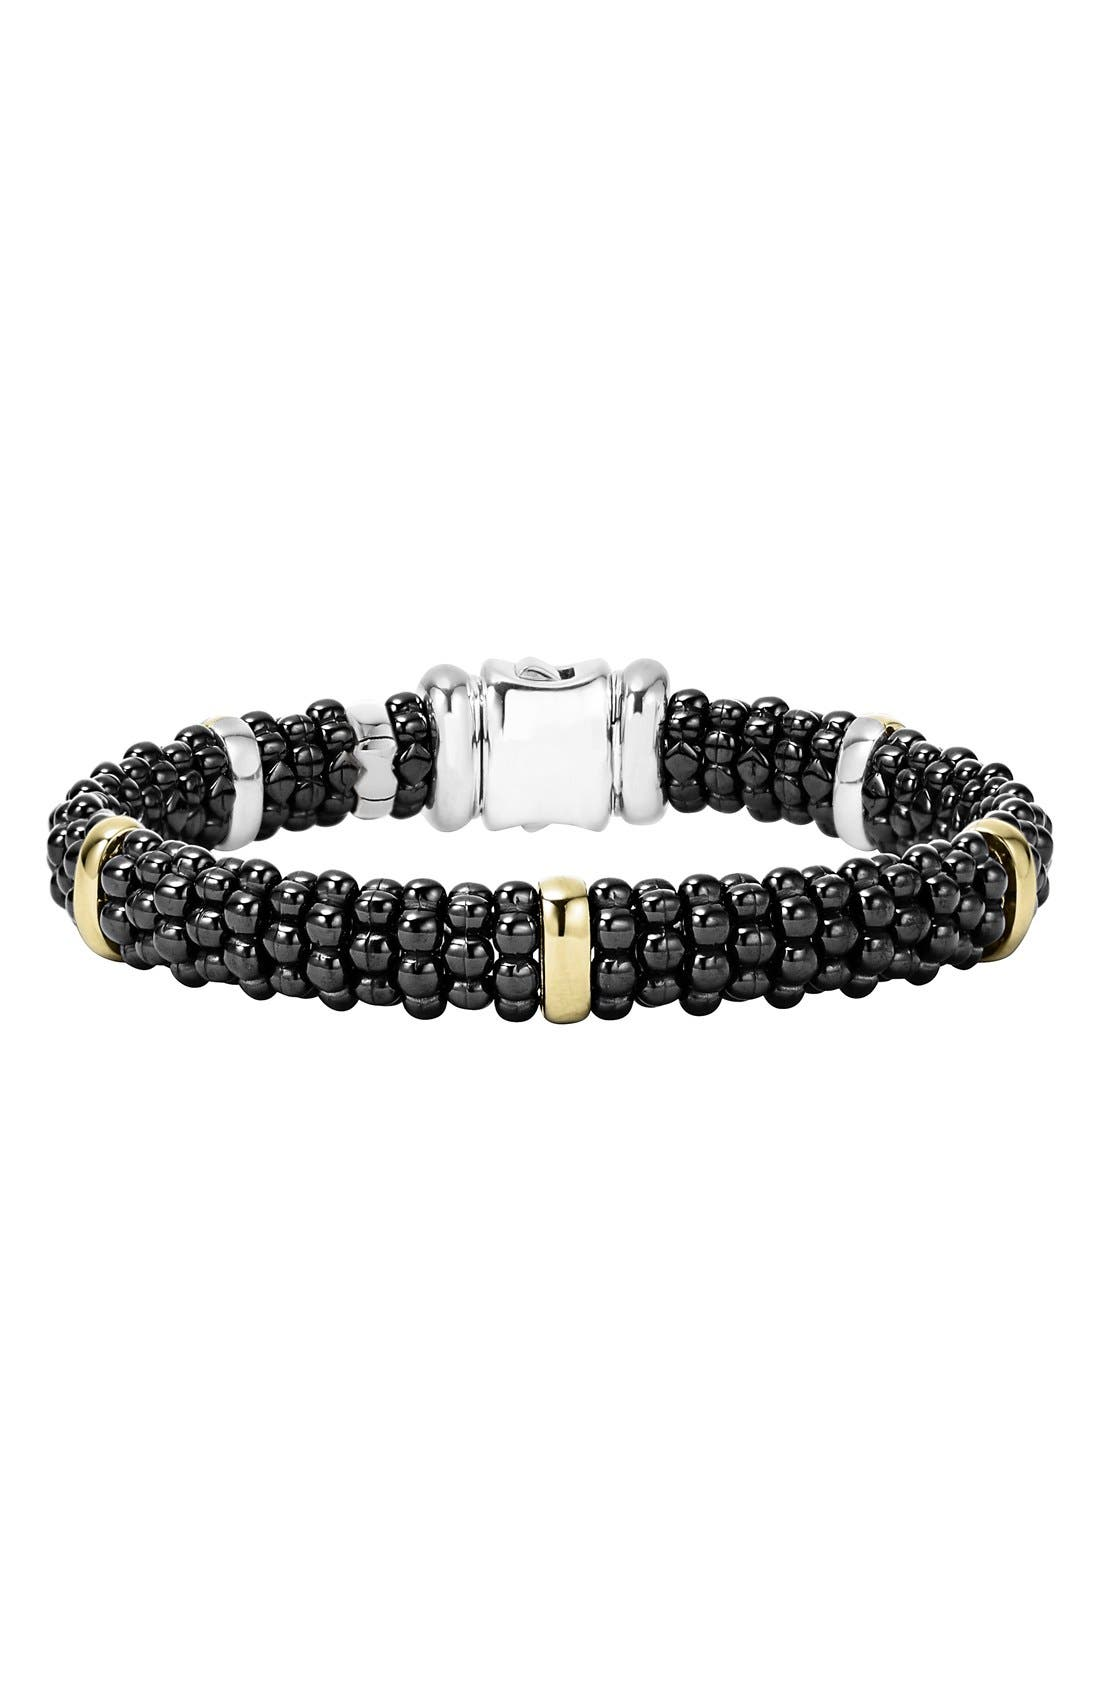 'Black Caviar' Rope Bracelet,                             Main thumbnail 1, color,                             Black Caviar/ Gold